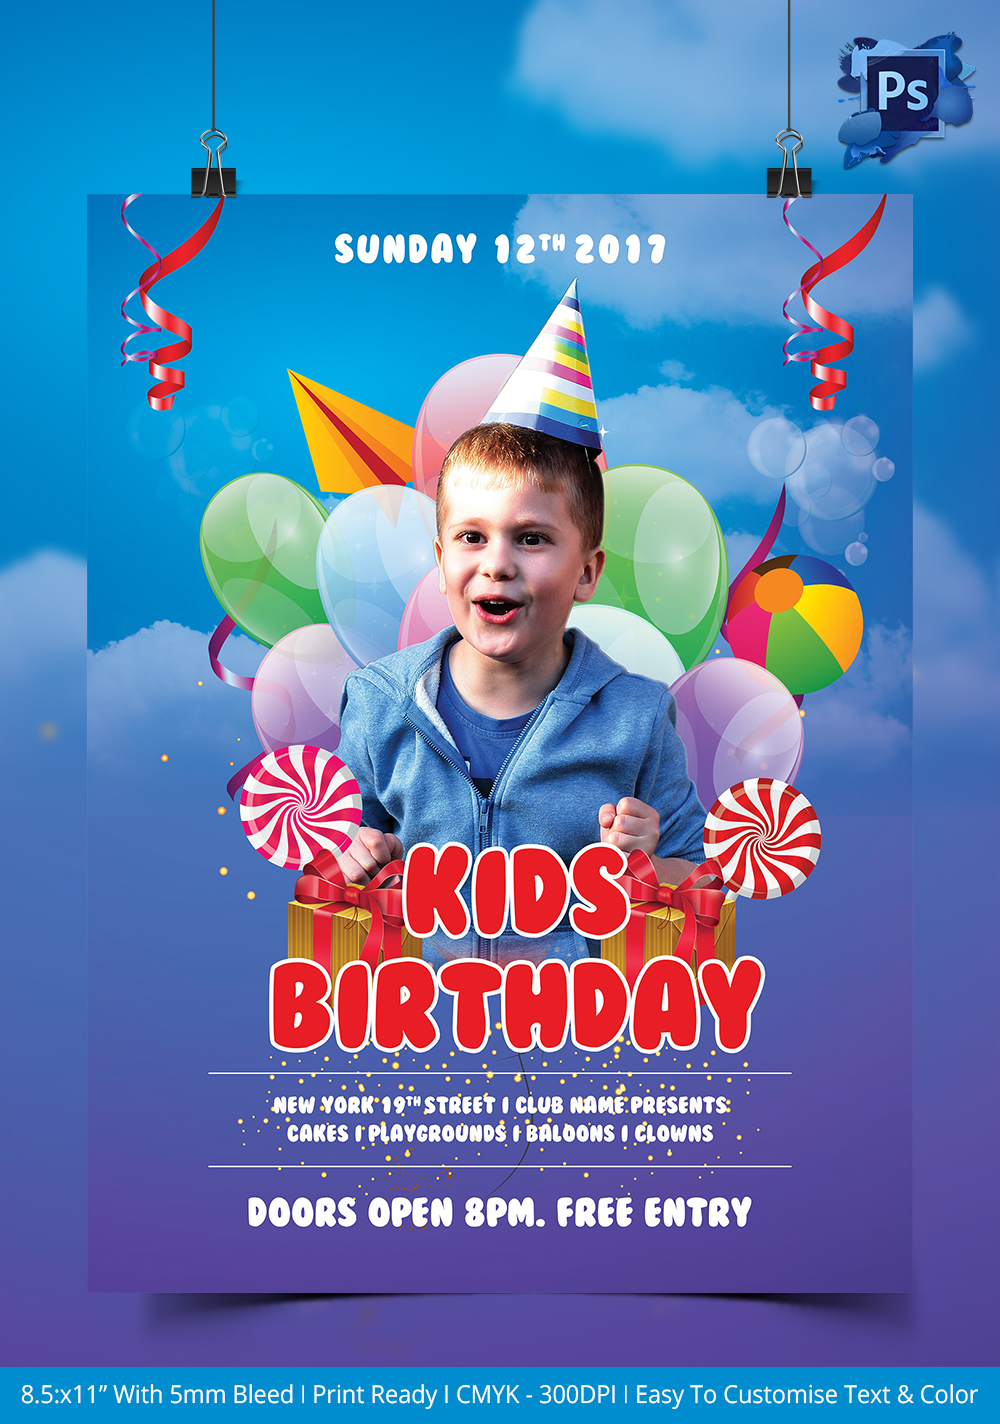 kids birthday poster ; birthday-poster-template-birthday-poster-template-birthday-poster-template-download-birthday-poster-template-photoshop-birthday-poster-template-free